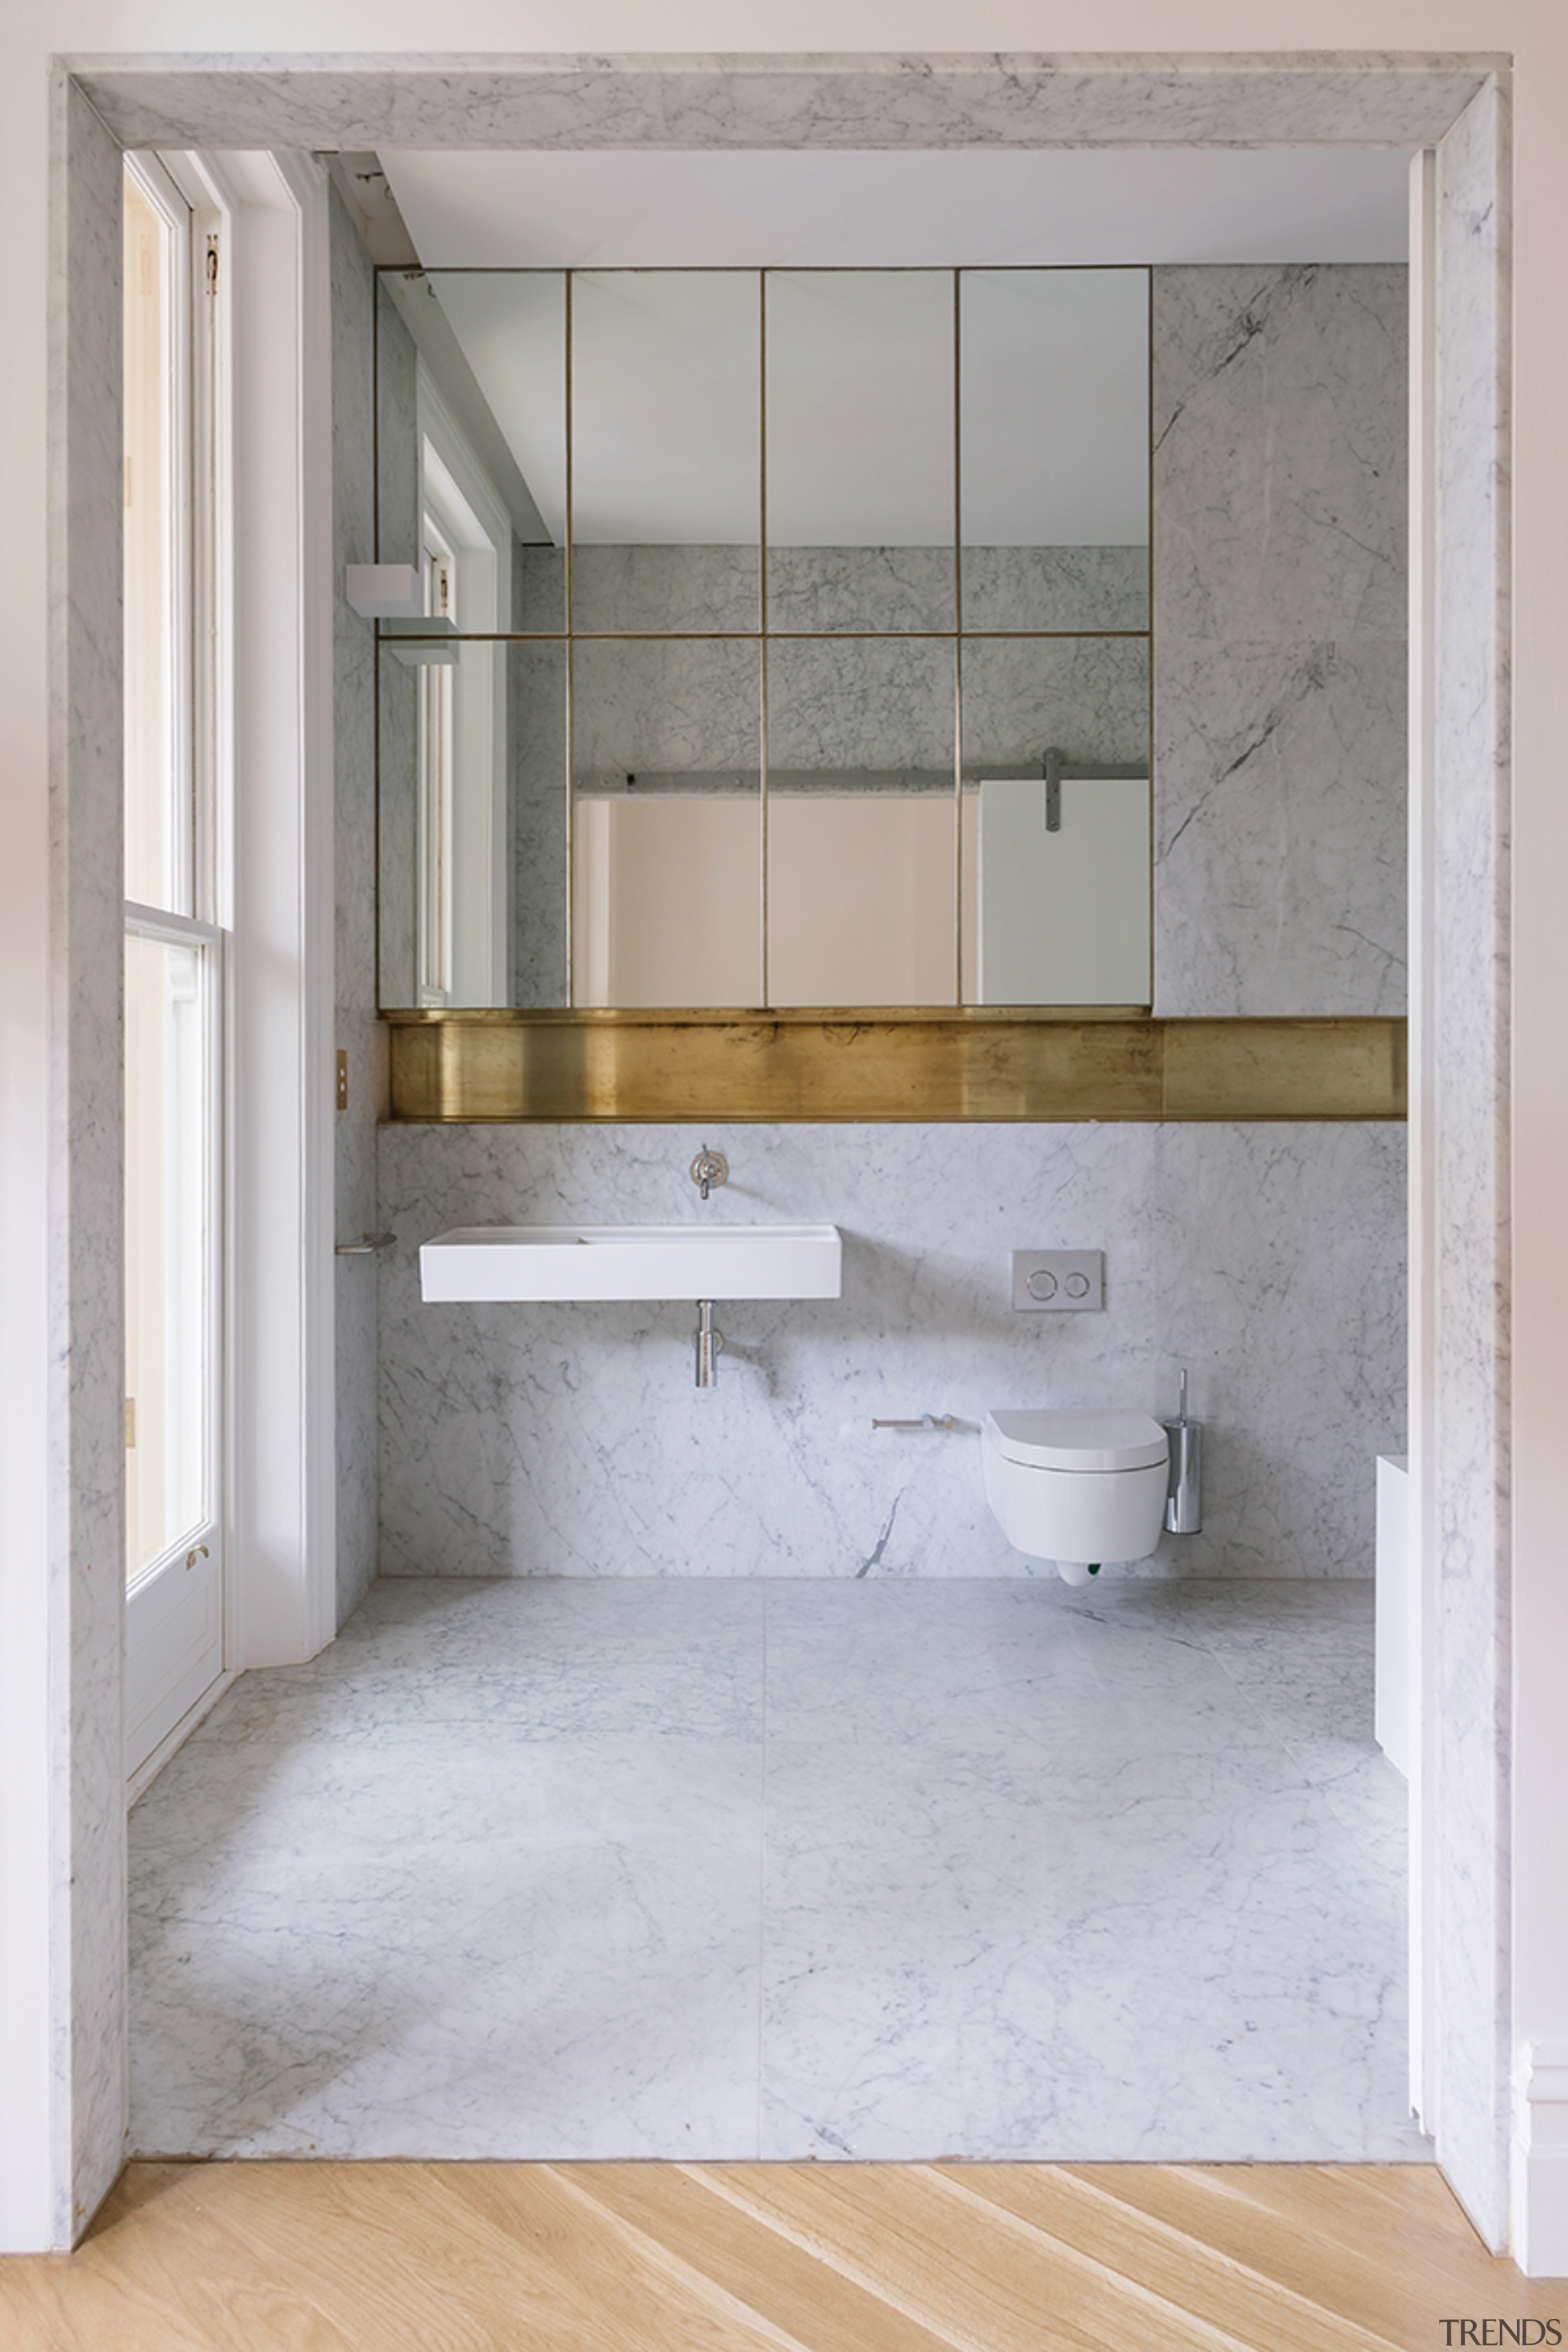 Read the full story architecture, bathroom, building, ceiling, door, floor, flooring, furniture, glass, house, interior design, material property, property, room, tile, wall, window, gray